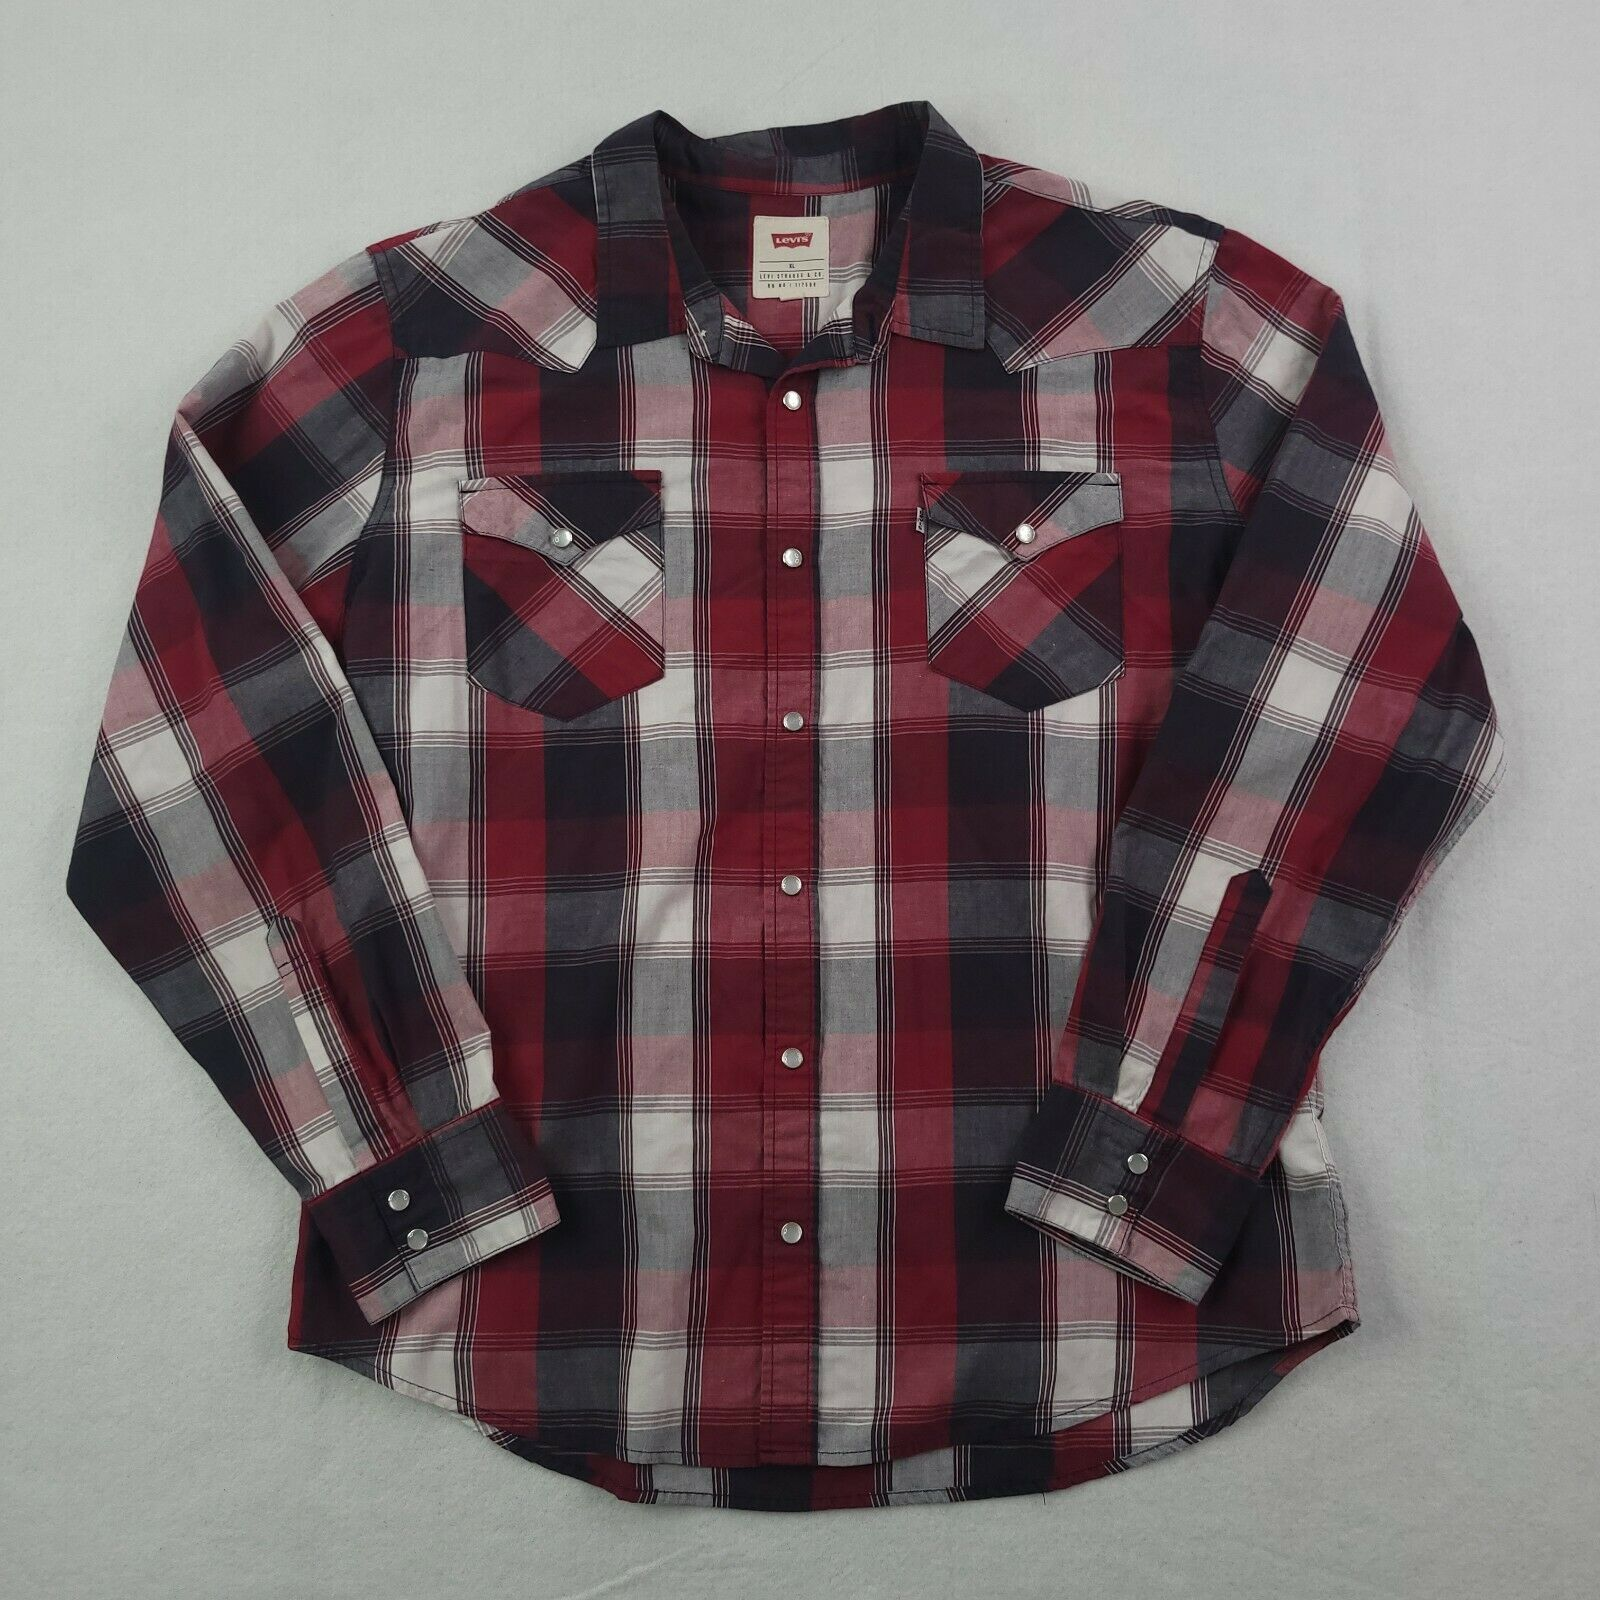 Product Image 1 - Levis Pearl Snap Shirt Adult